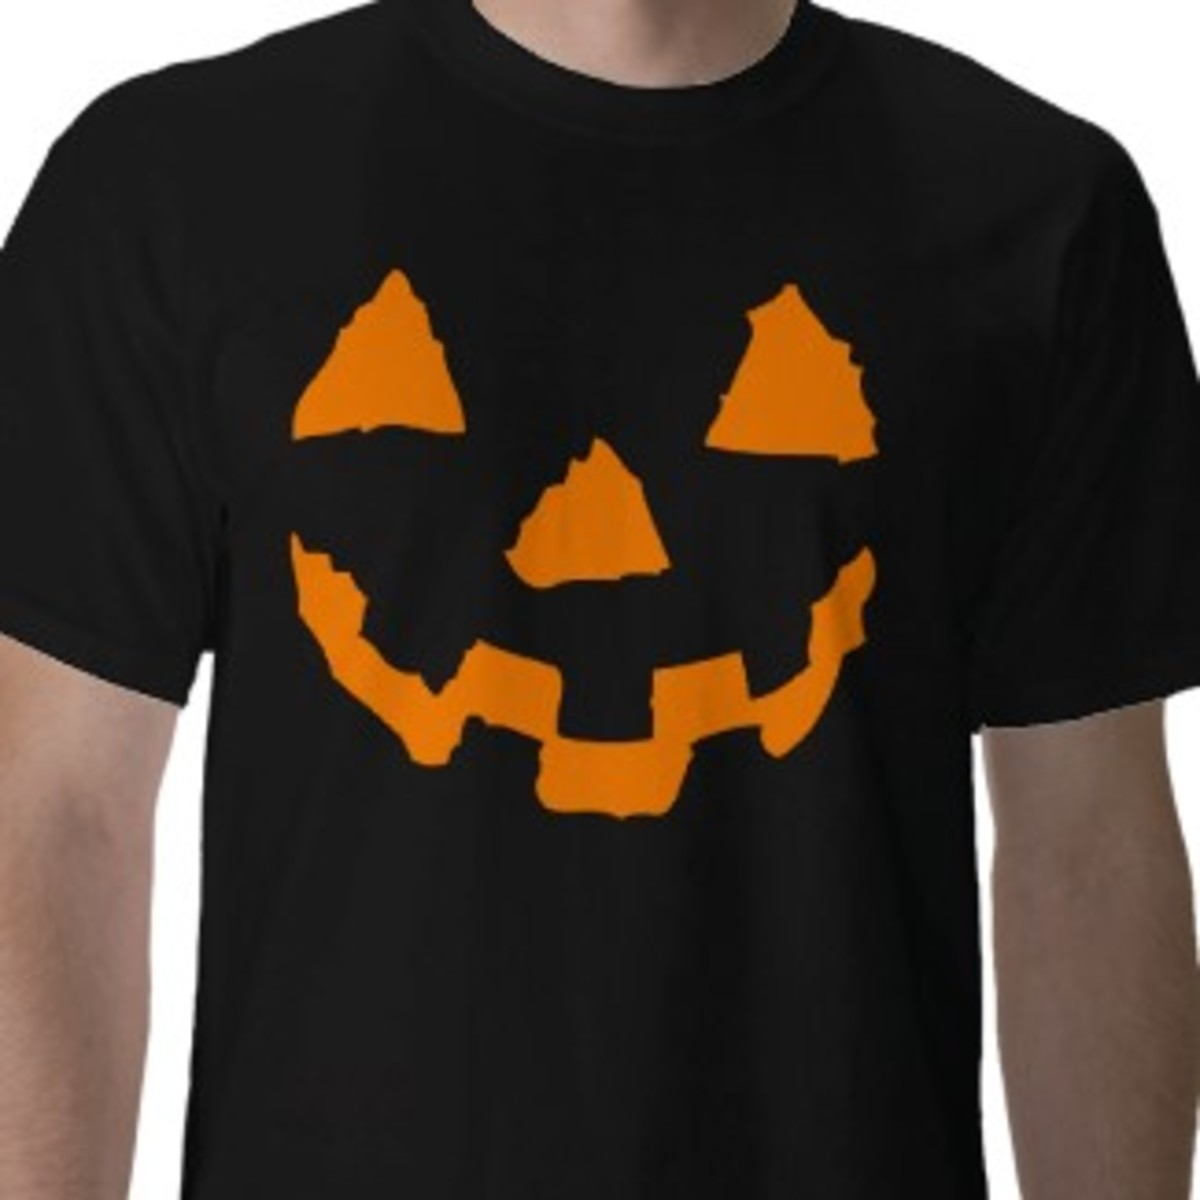 Classic orange pumpkin face Halloween tee for guys created by SPTees on Zazzle